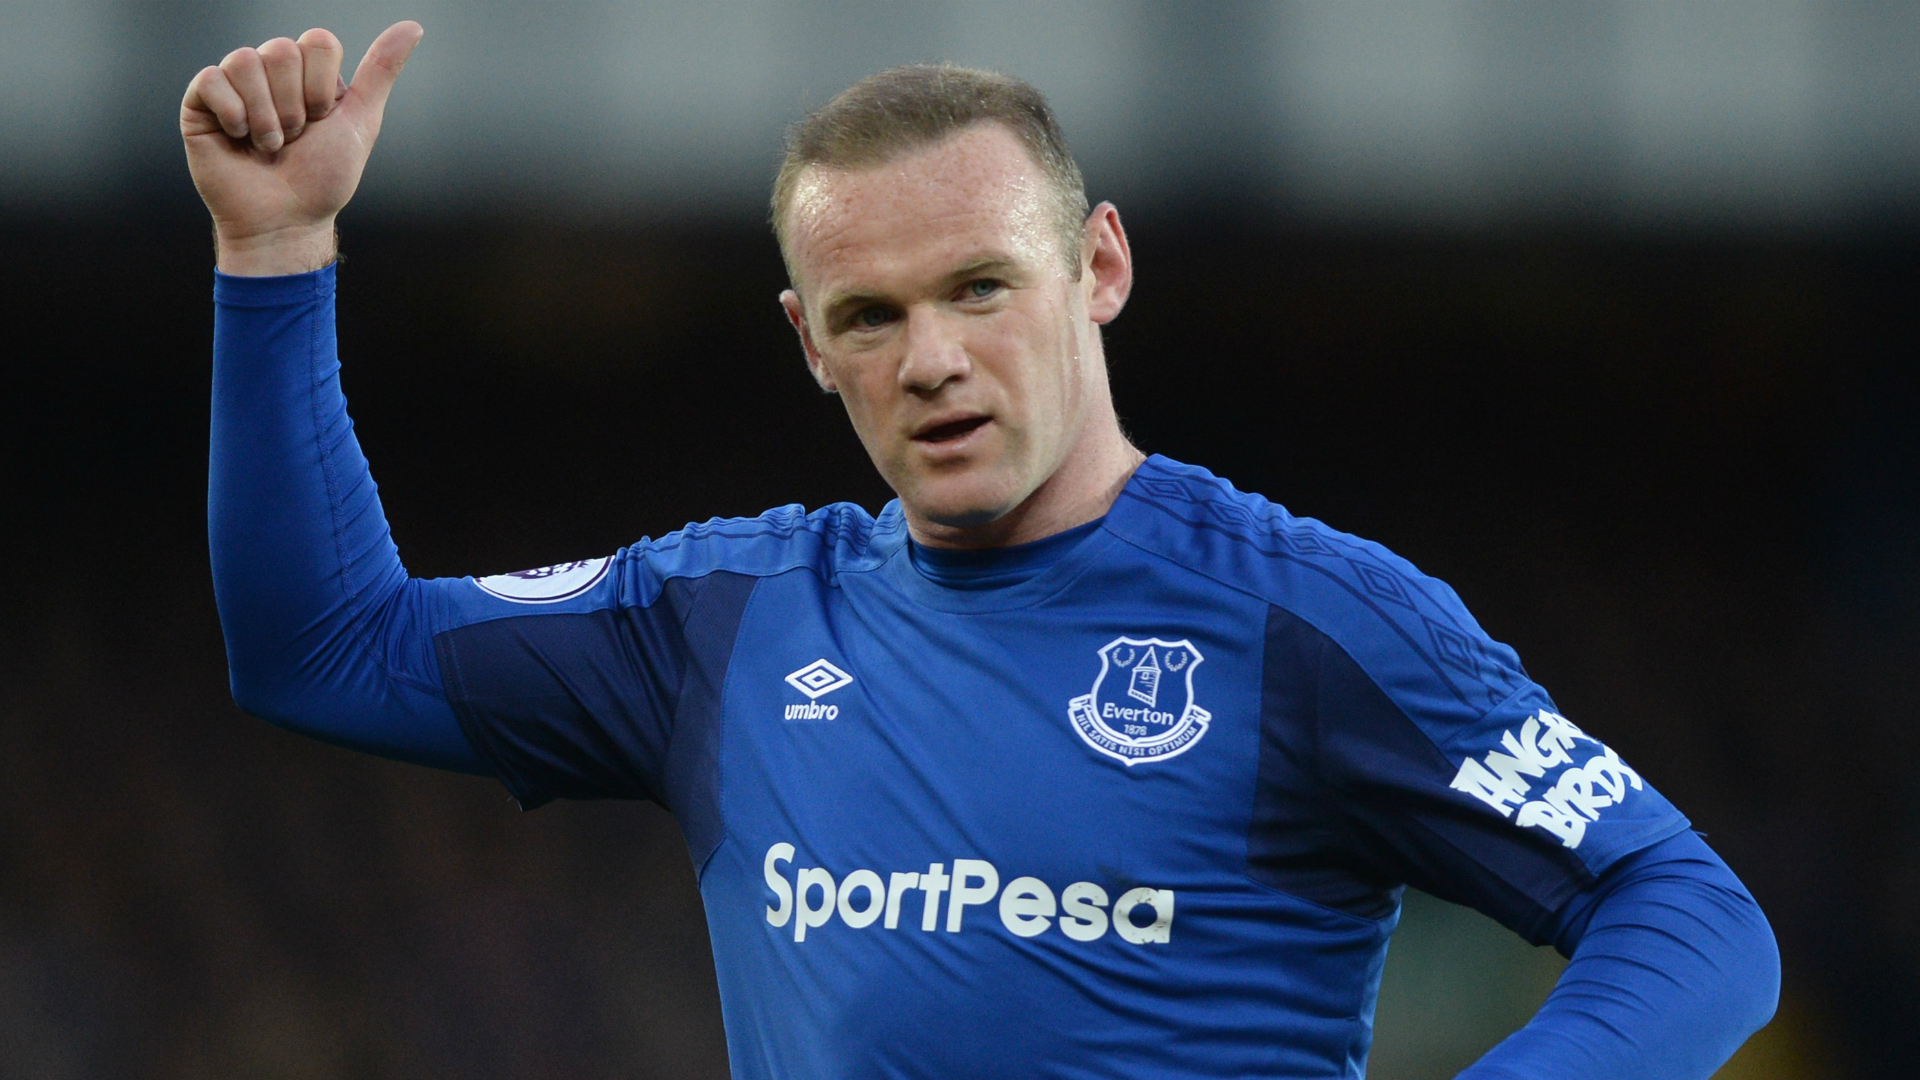 Everton star confirms he is travelling to complete move away